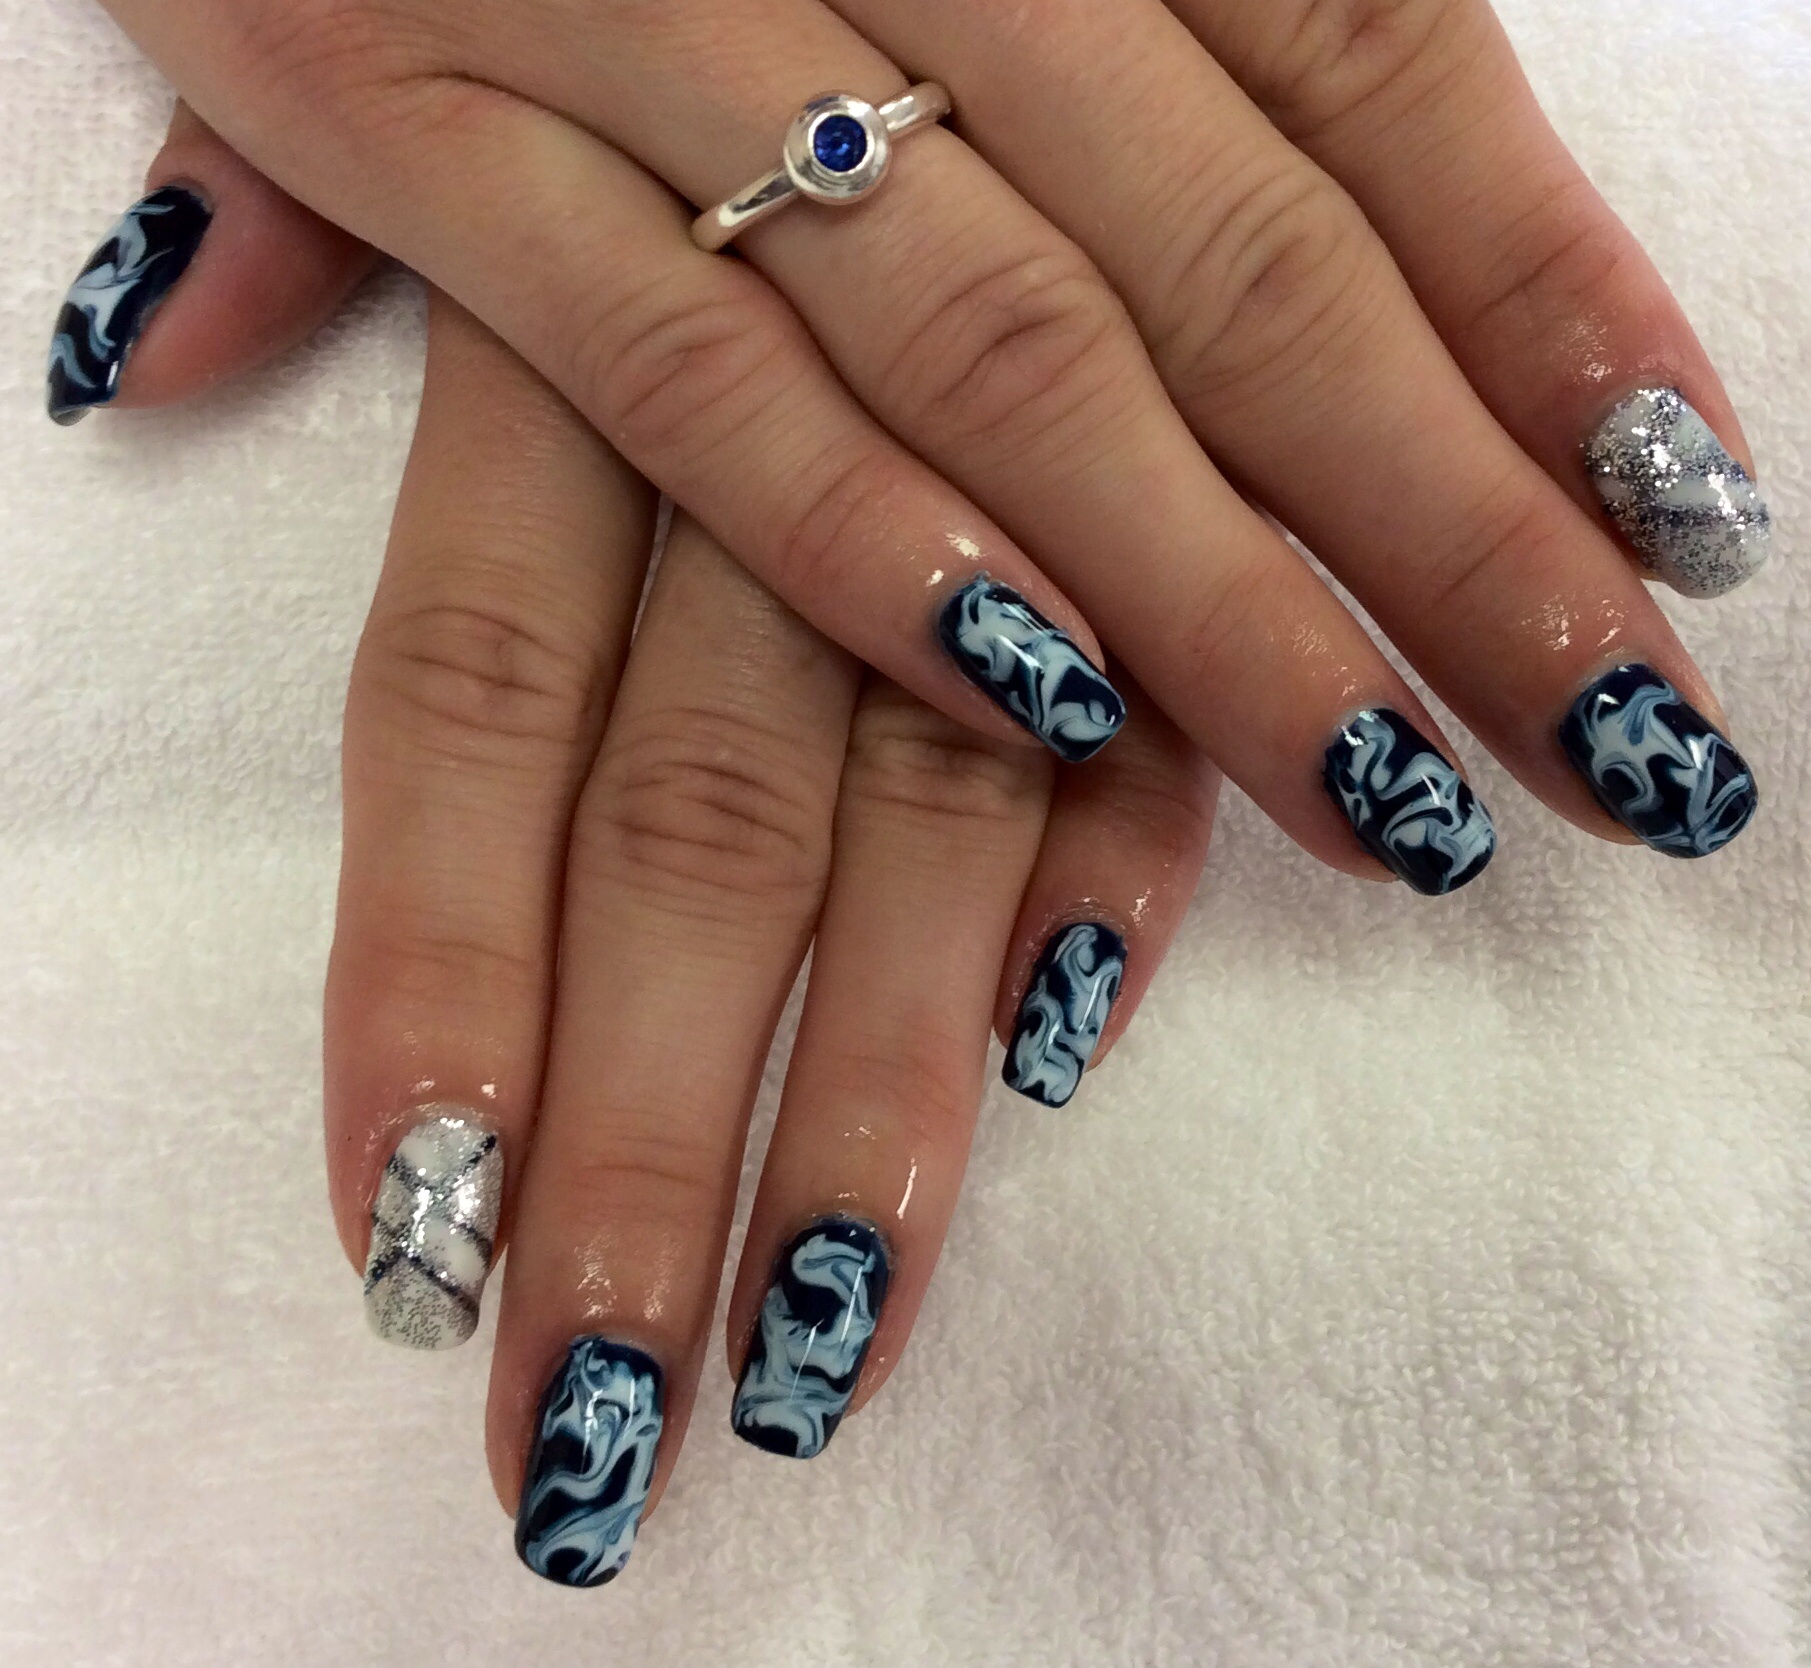 Luxurious Nails 25 N Earl Ave, Lafayette, IN 47904 - YP.com